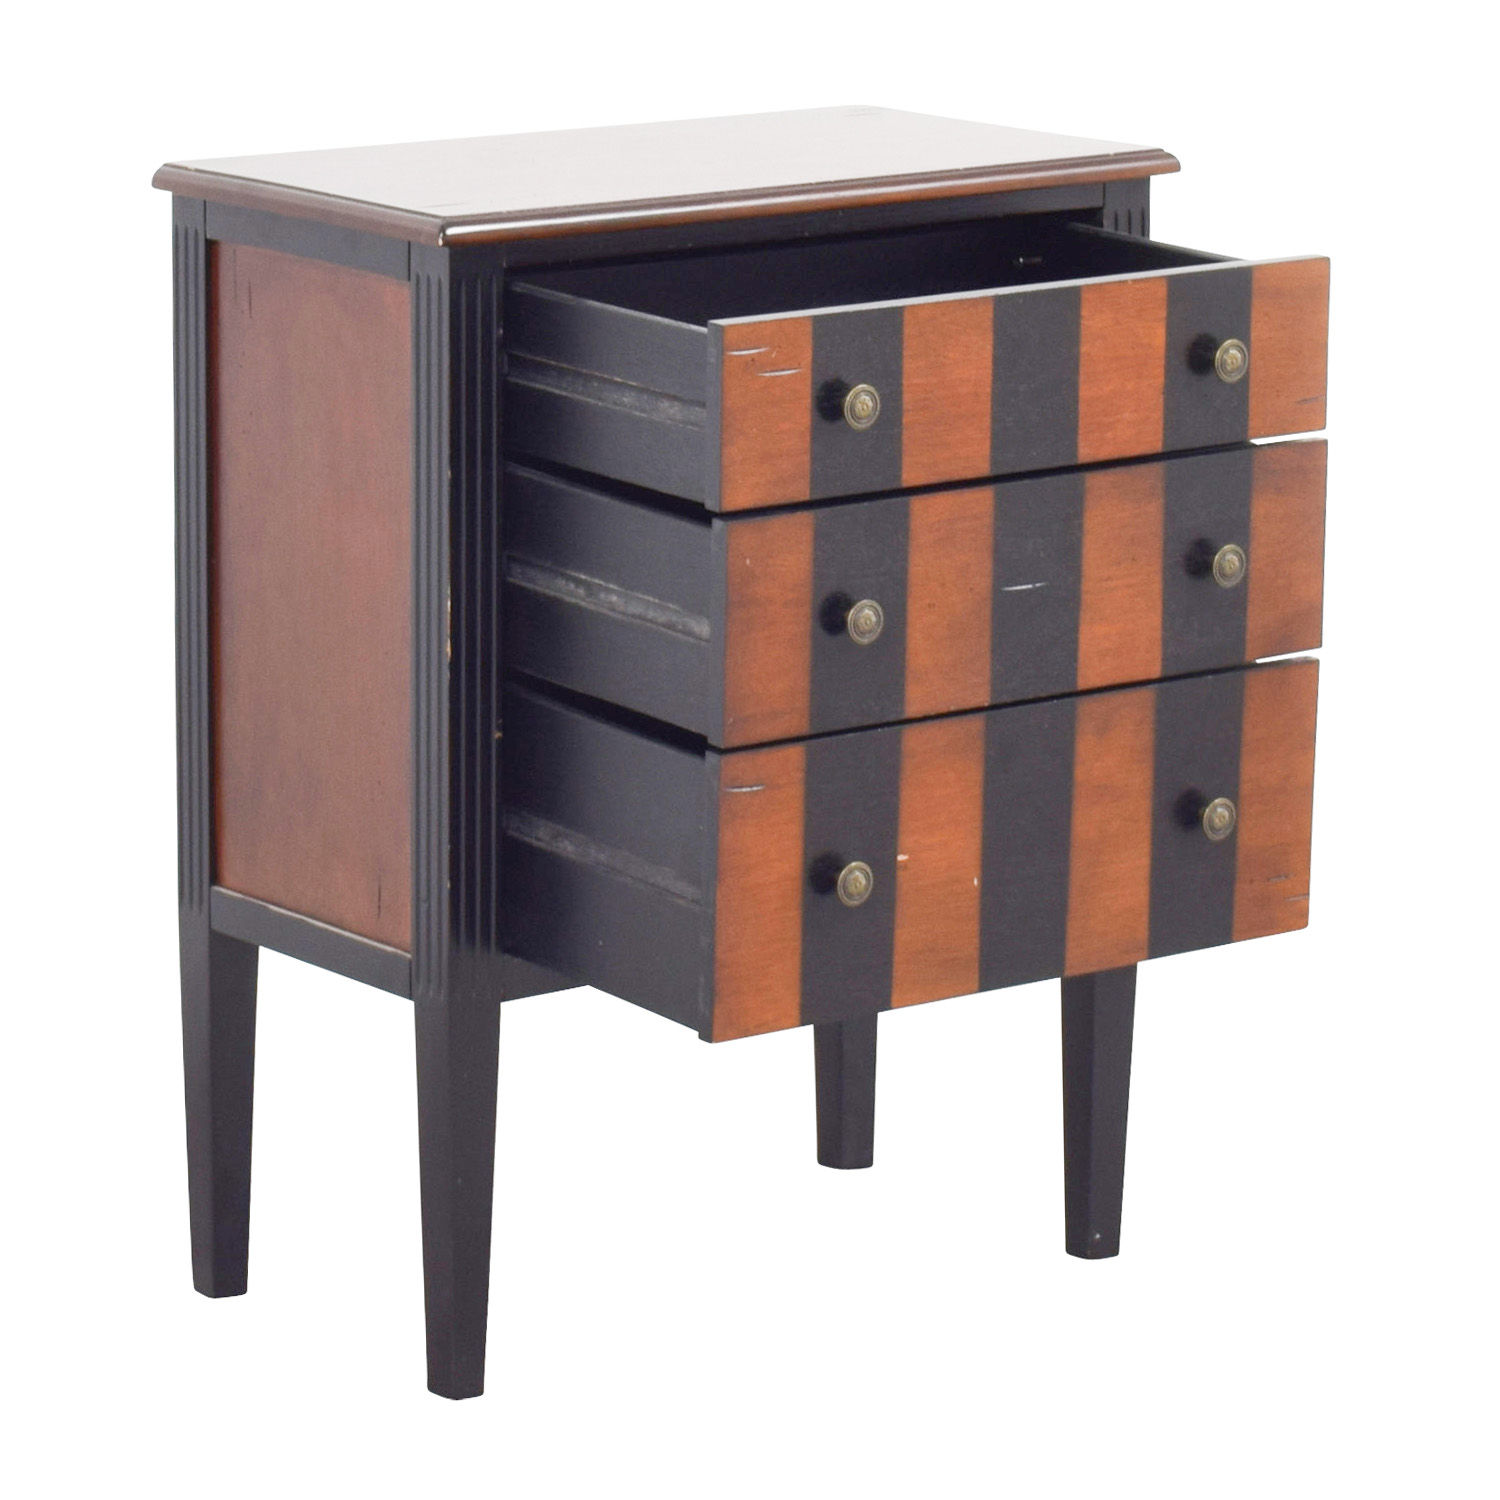 buy Pier 1 Imports Pier 1 Imports Striped Side Table online